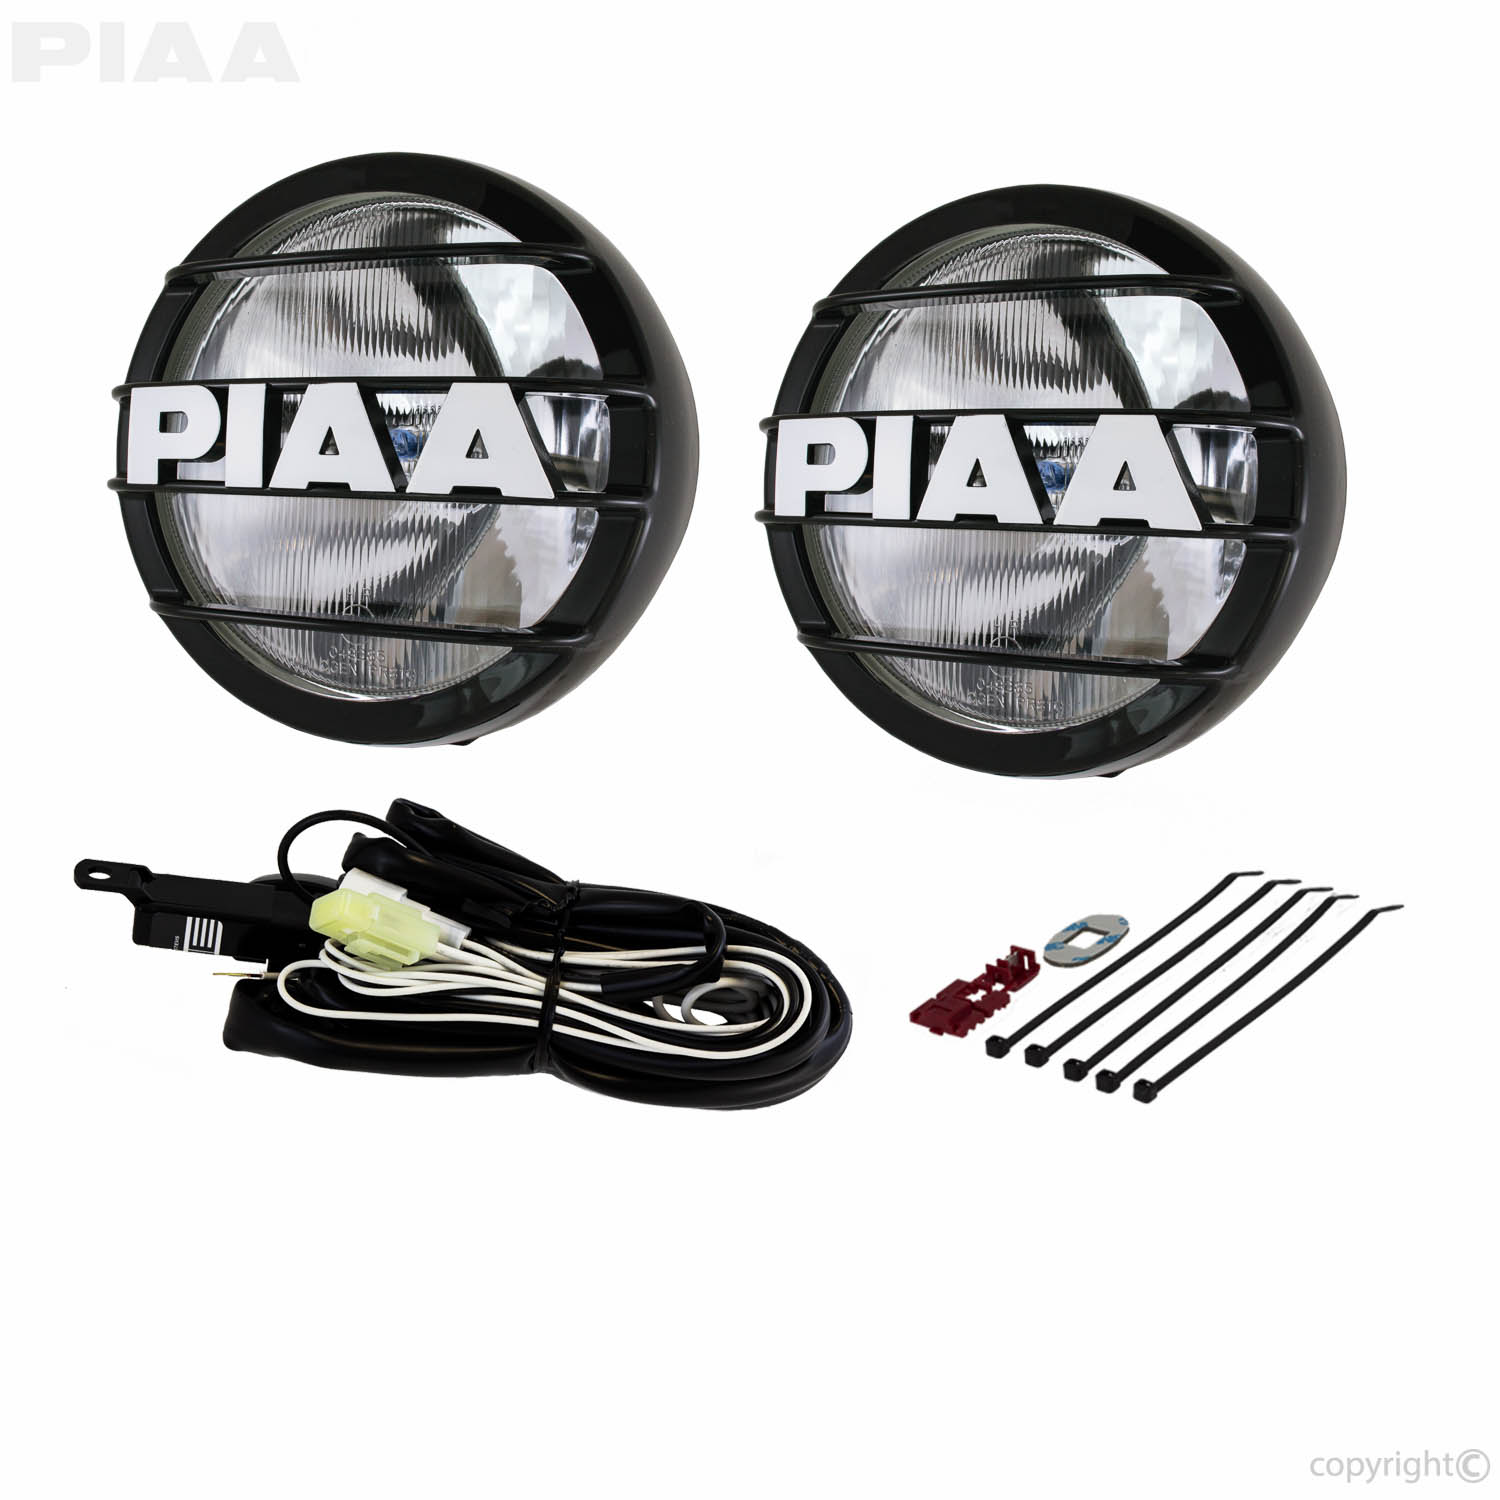 Piaa 580 Wiring Diagram Not Lossing Harness Driving Xtreme White Plus Halogen Lamp Kit 05862 Rh Com